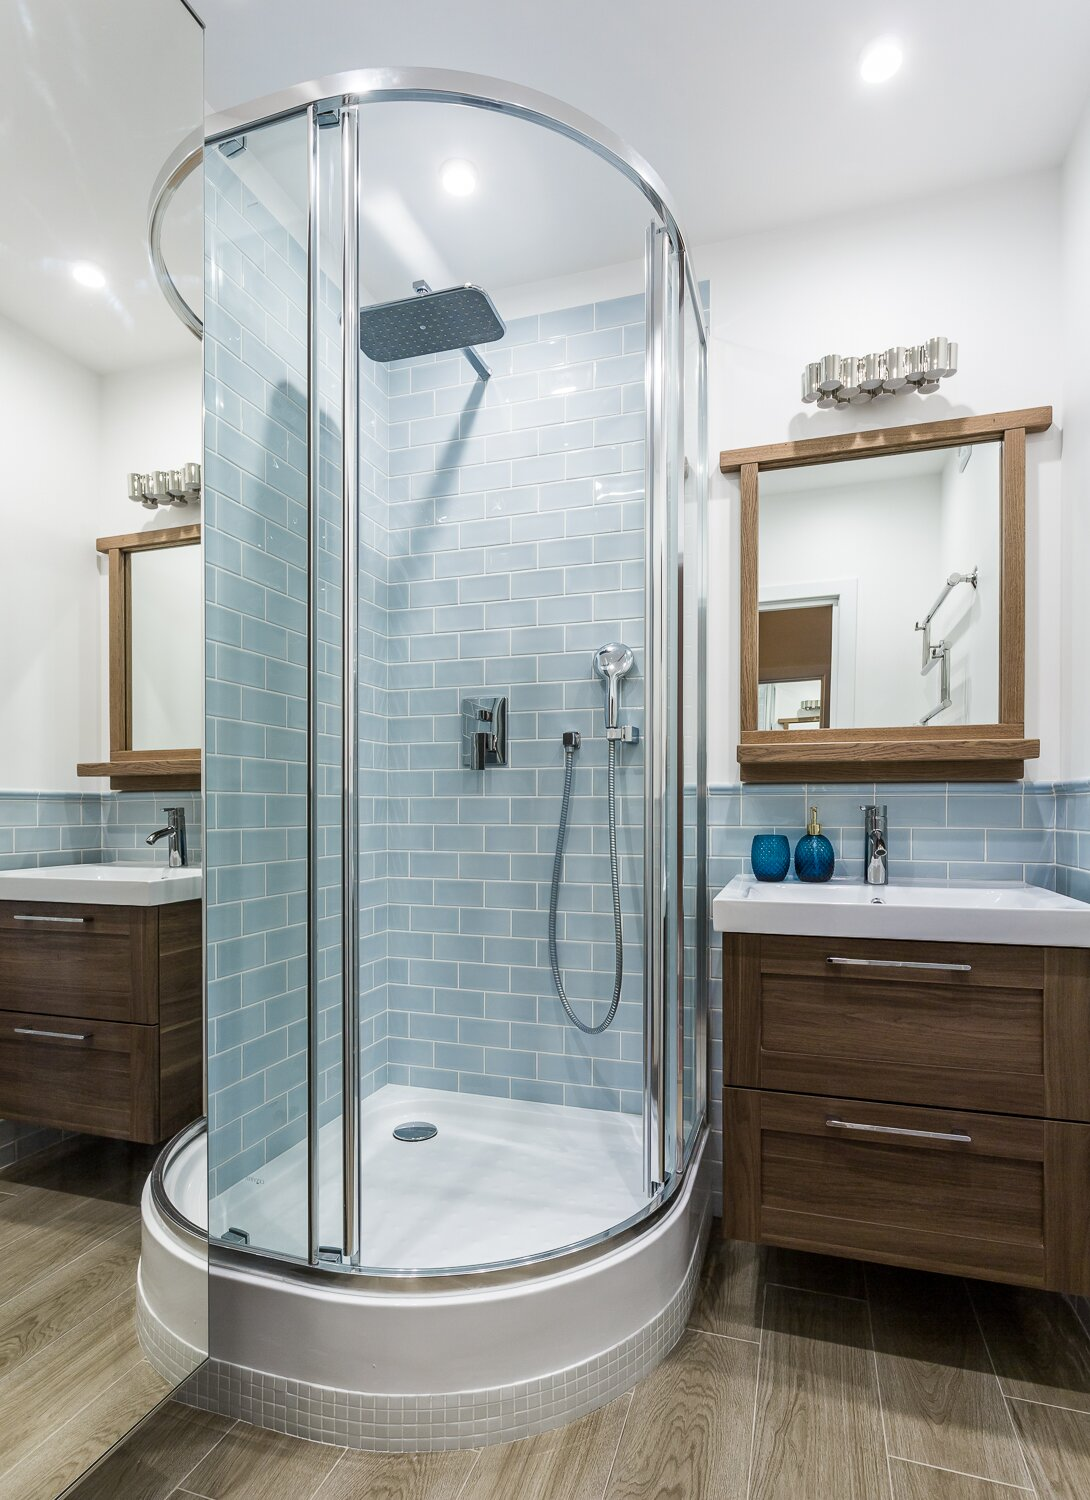 Bathroom Remodel Where To Start bathroom remodel from start to finish - l' essenziale